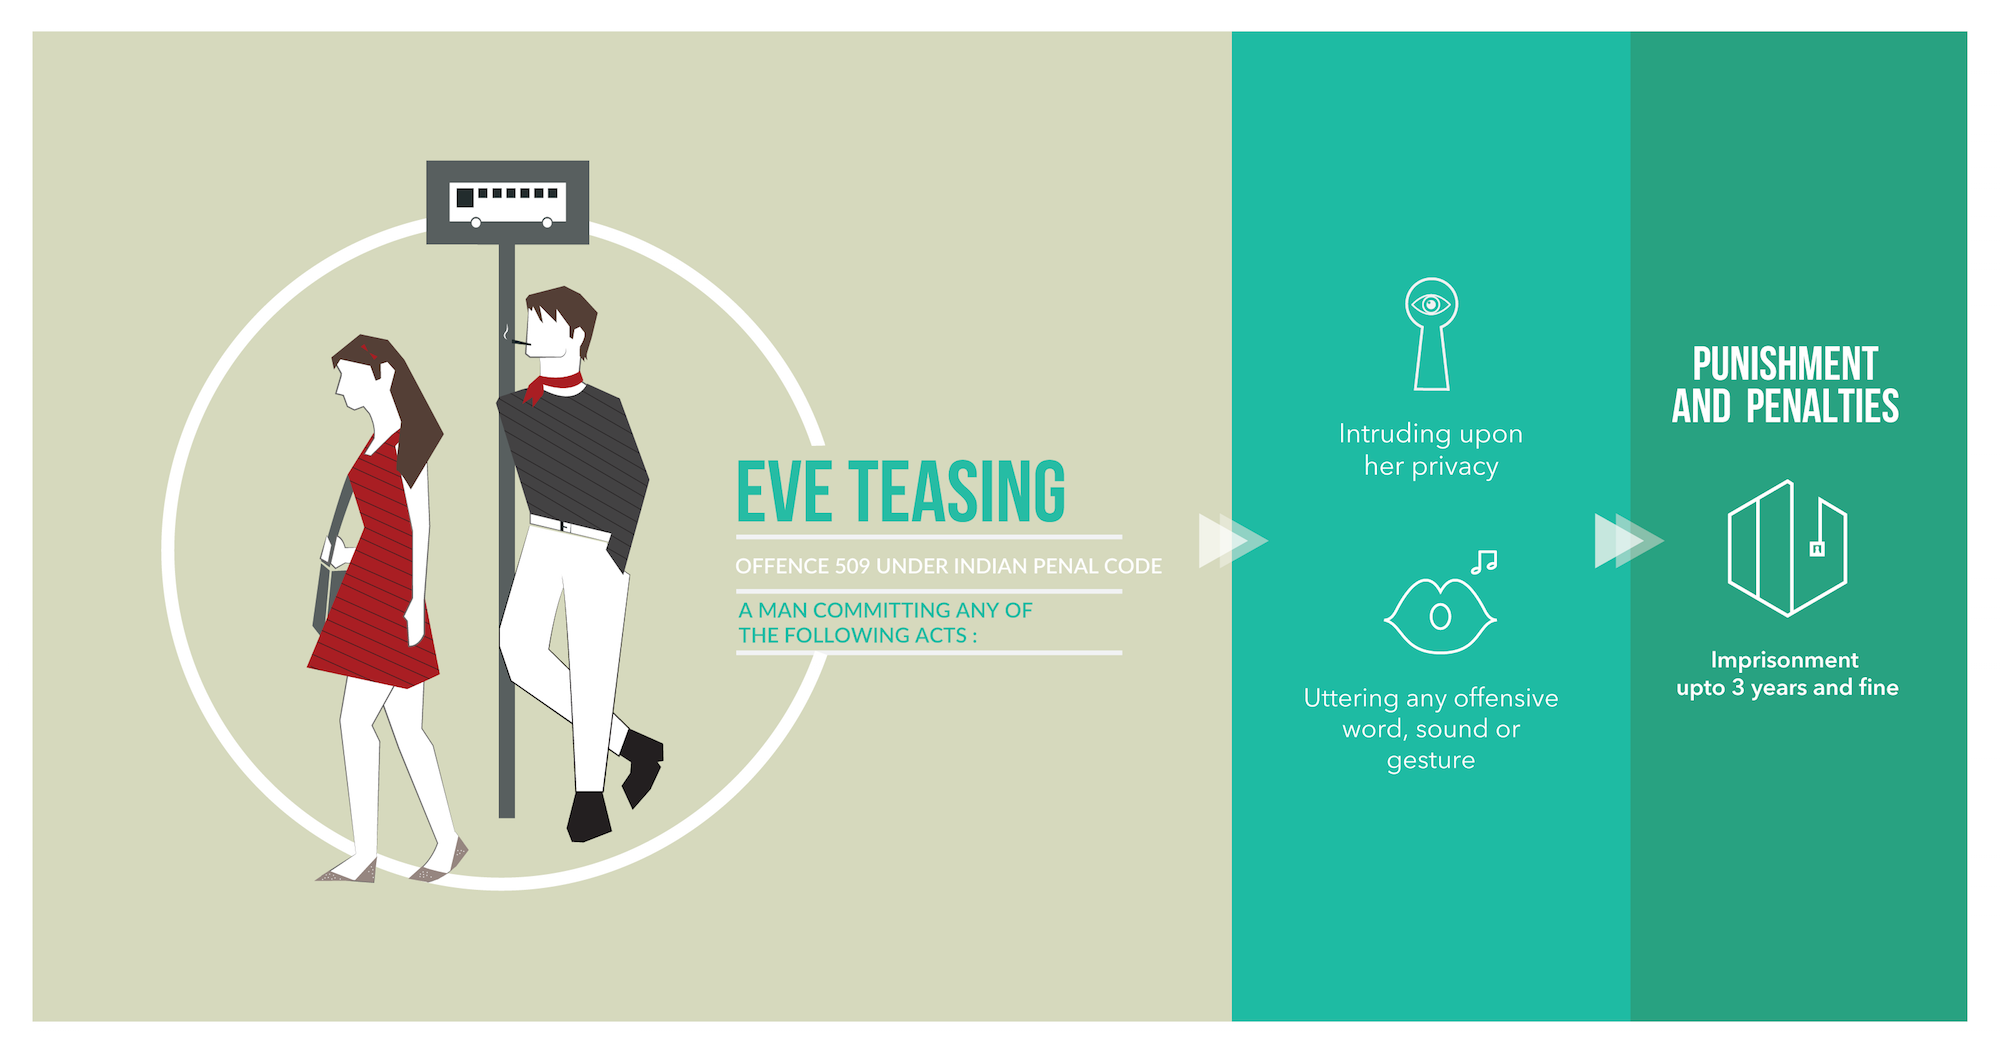 remedy for eve teasing Eve teasing and lawthough eve- teasing and molestation are offence in india, women face these often while travelling in public tra.